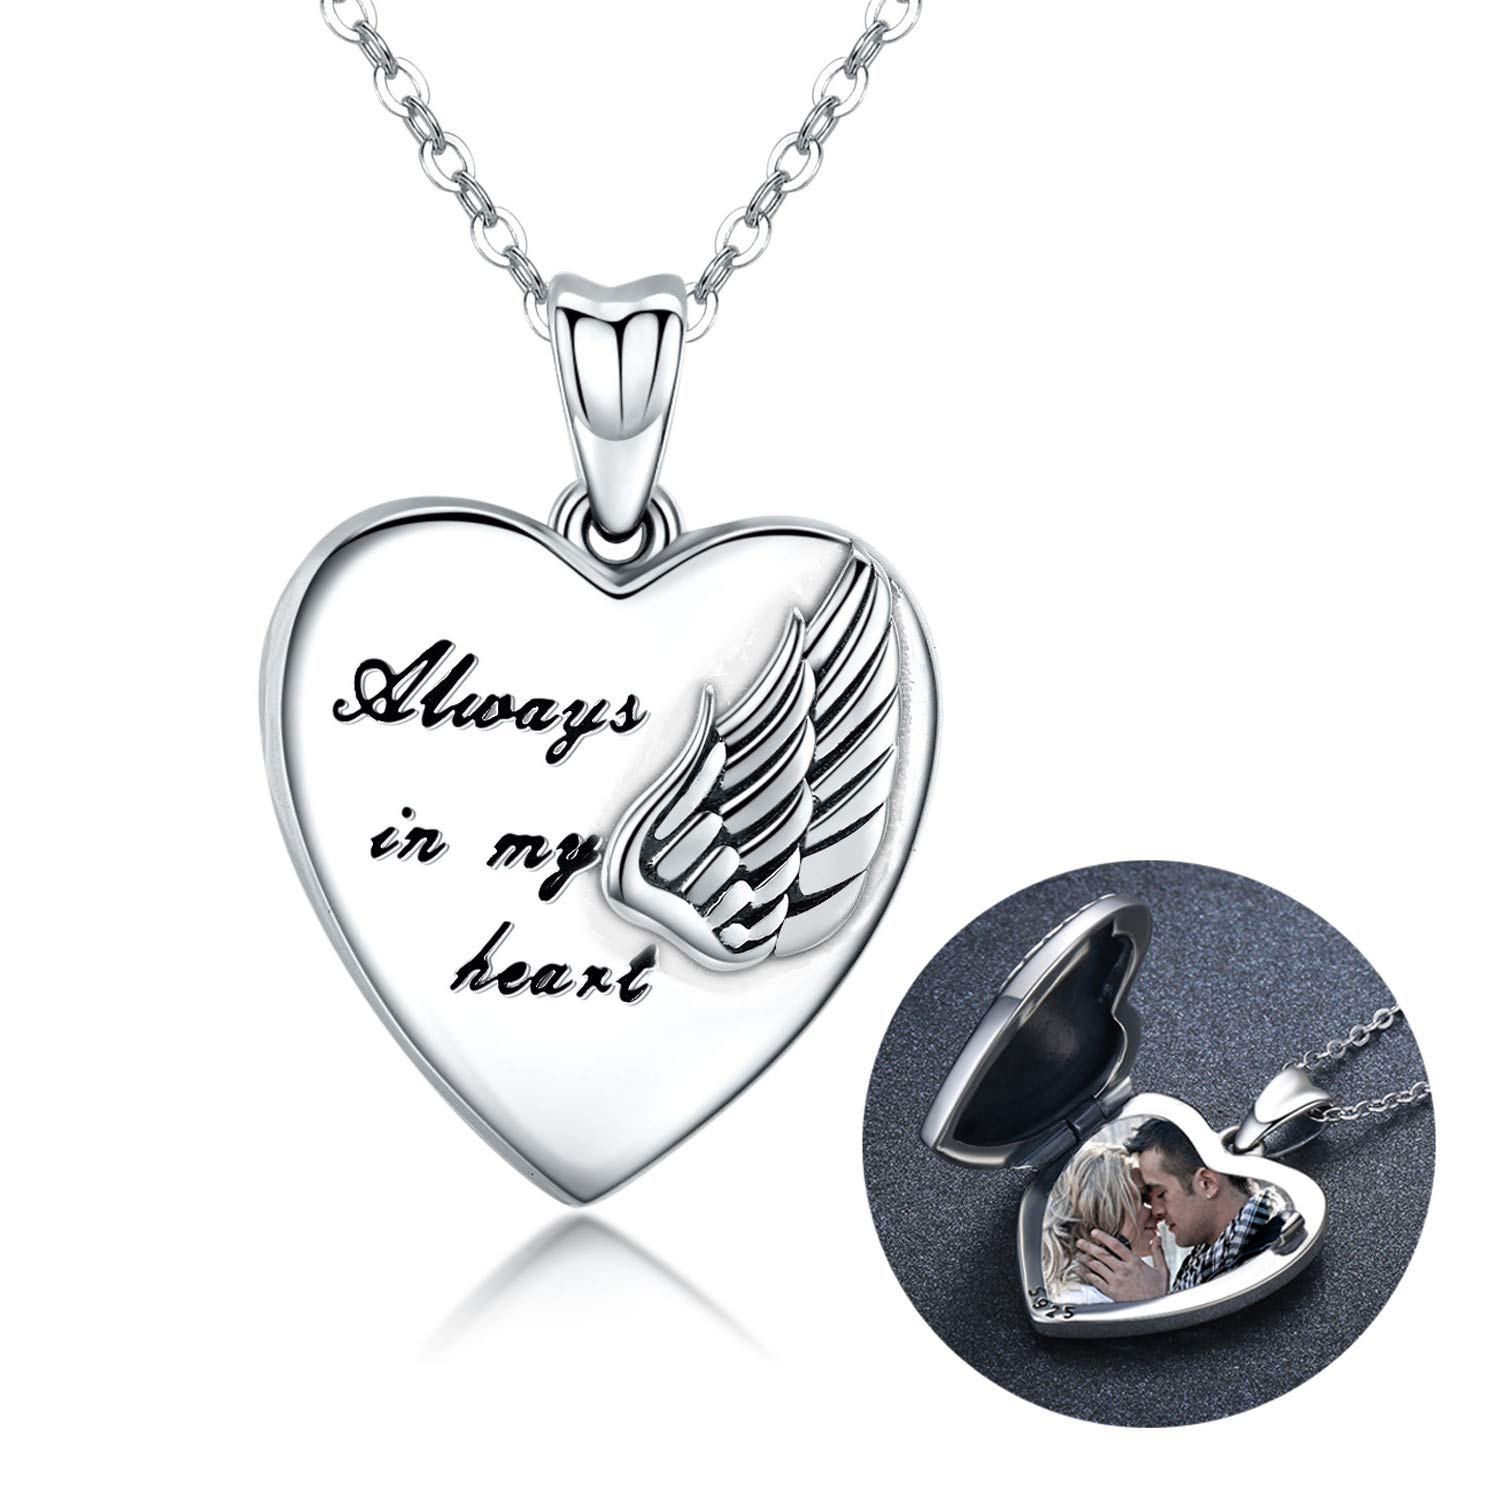 MEDWISE 925 Sterling Silver Locket Necklace That Holds Pictures Angel Wings Locket Necklace Pendant Gift for Women Always in My Heart Photo Lockets Keepsake by MEDWISE